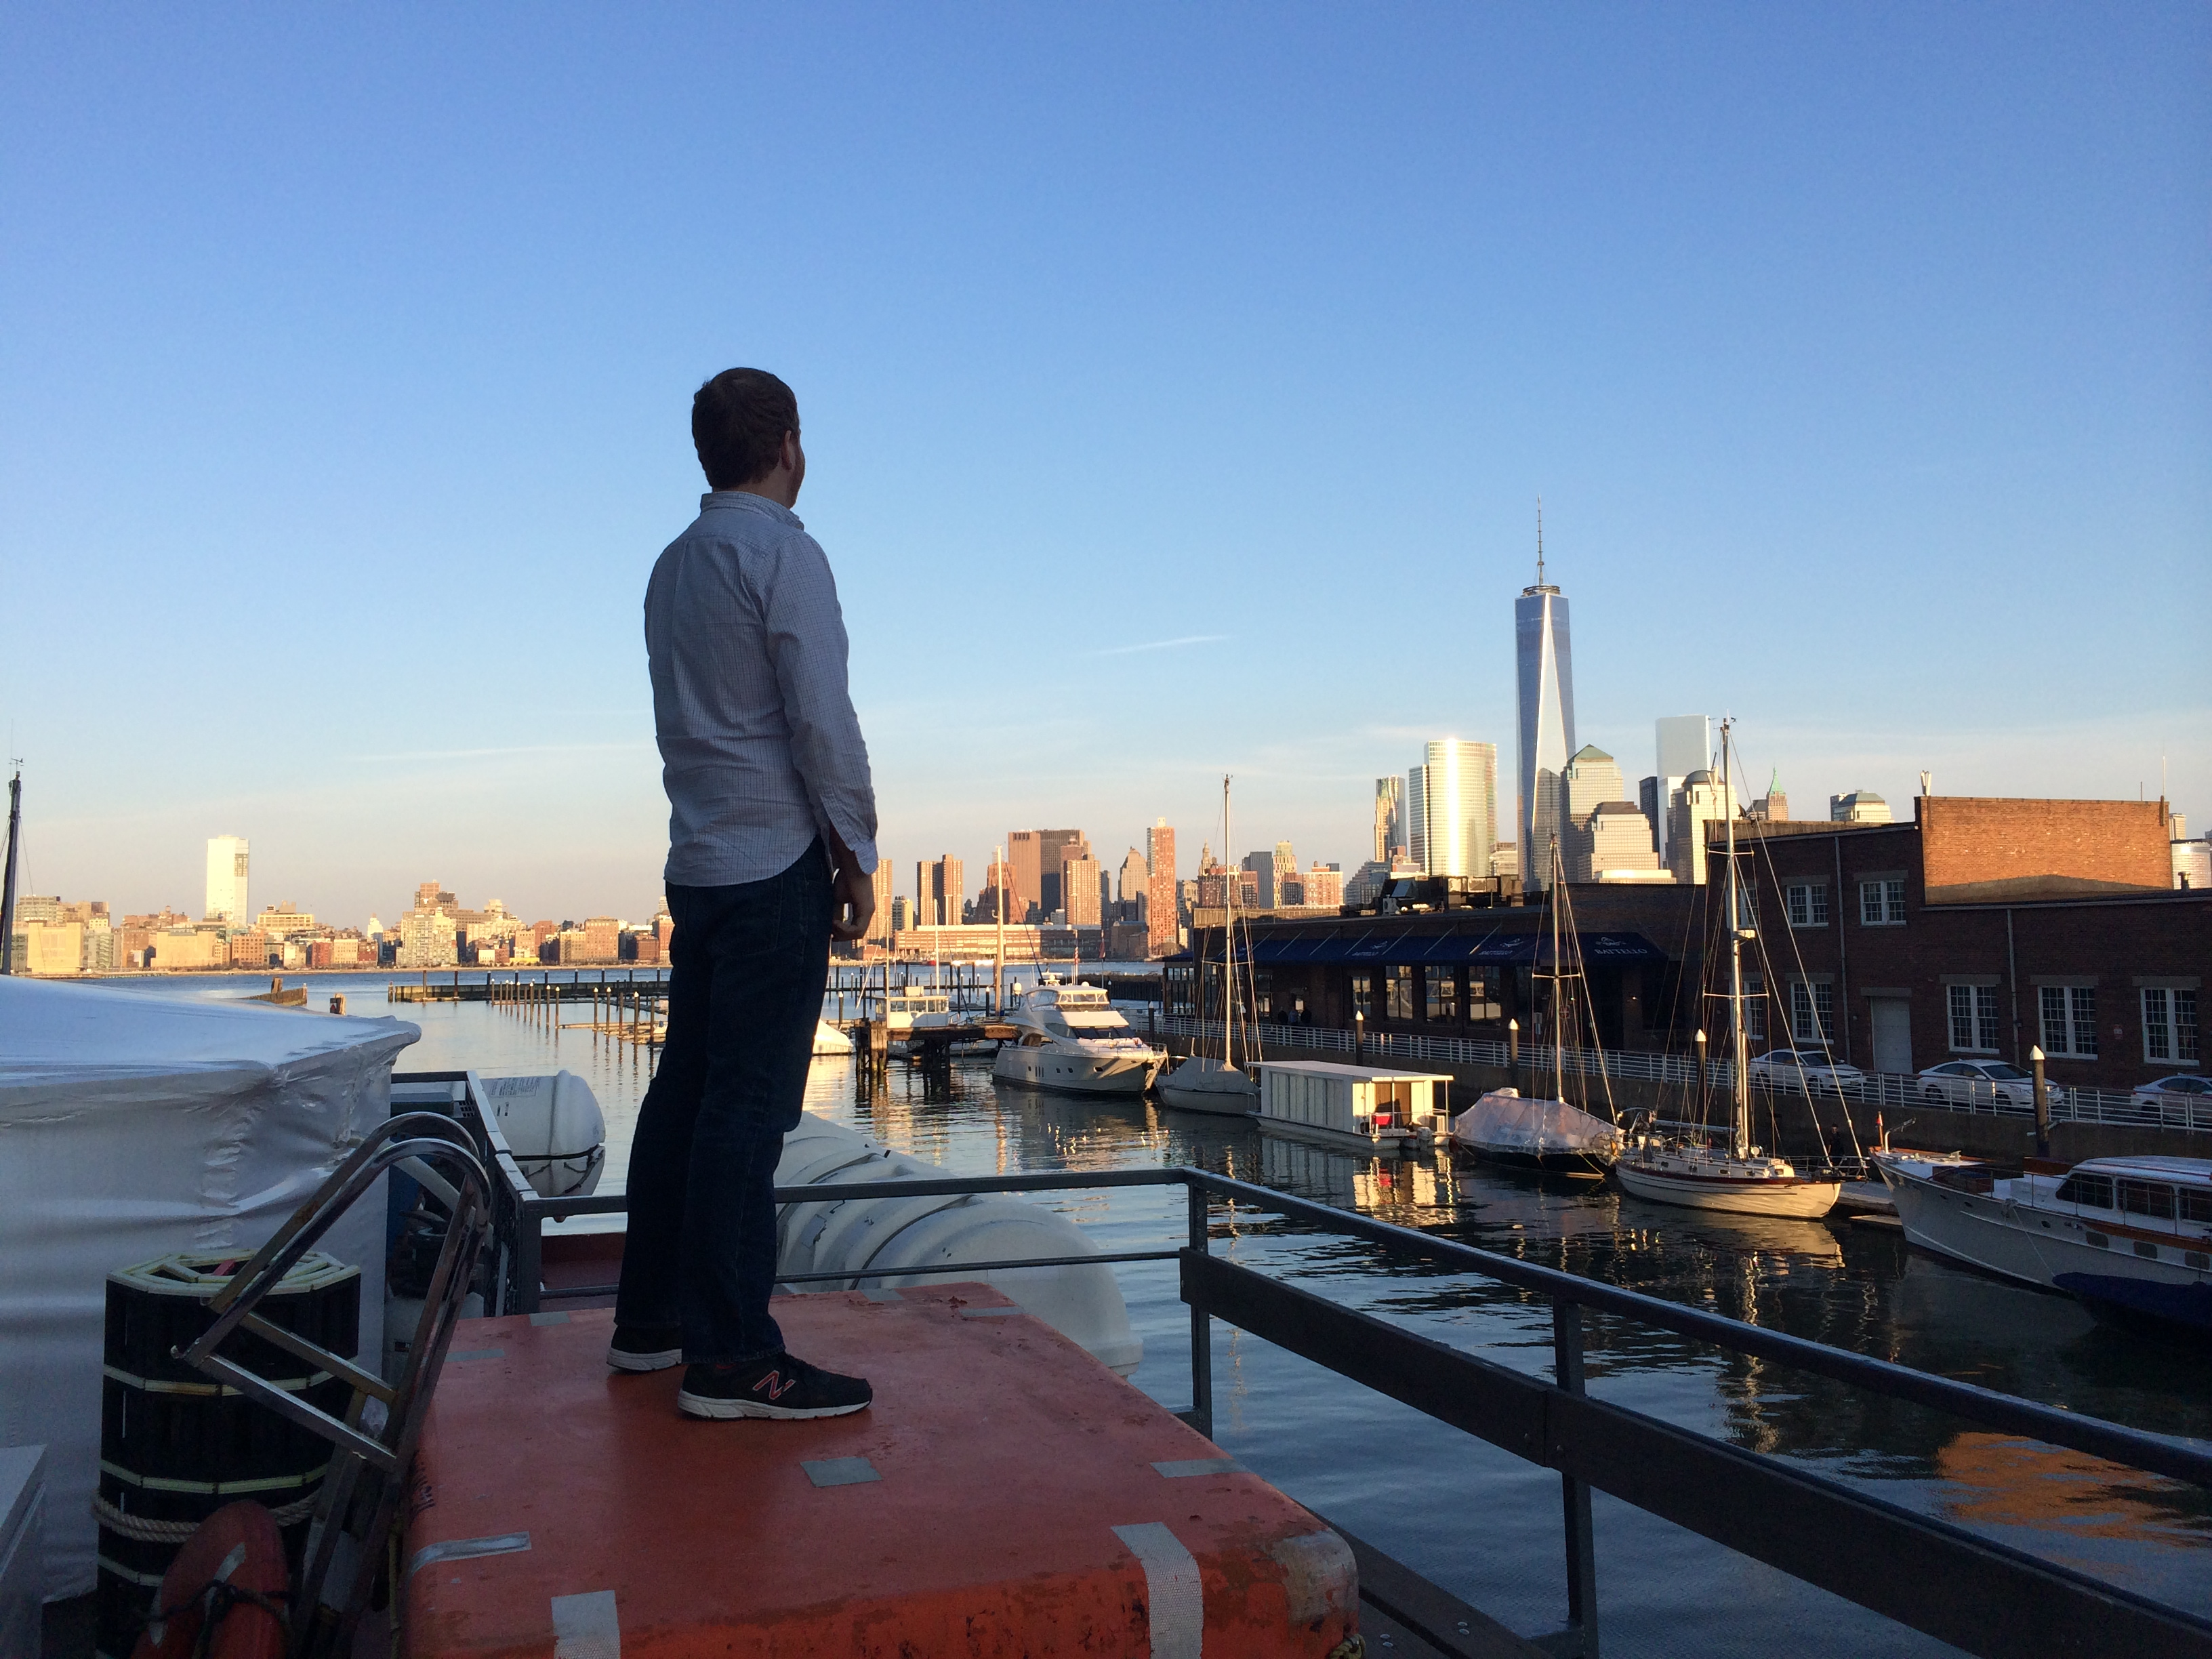 Staring at the New York City Skyline